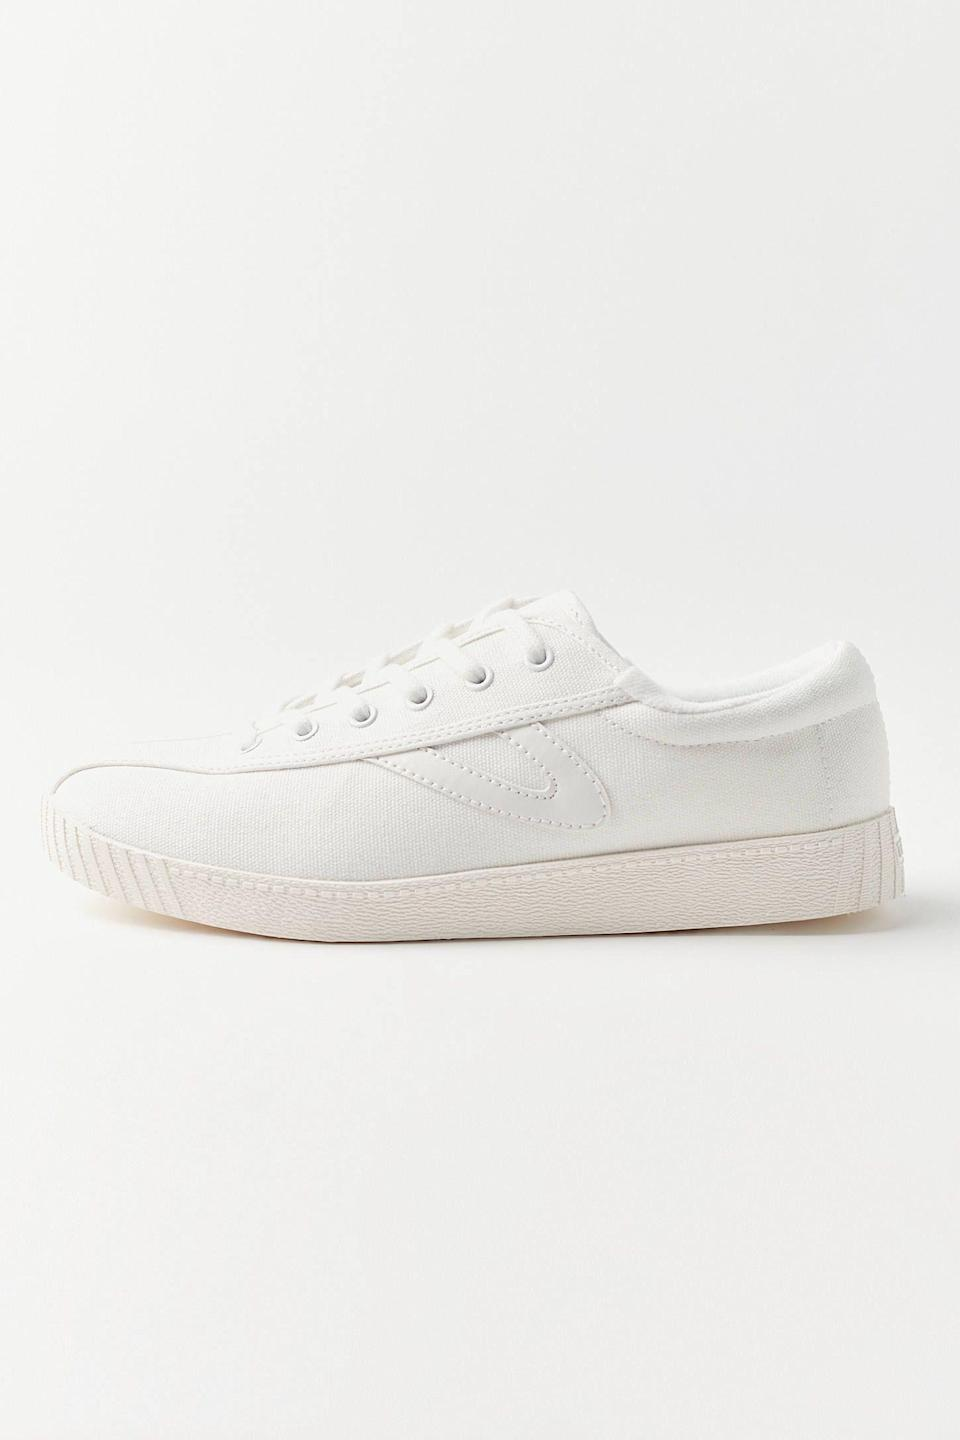 "<p><strong>Tretorn</strong></p><p>urbanoutfitters.com</p><p><strong>$44.99</strong></p><p><a href=""https://go.redirectingat.com?id=74968X1596630&url=https%3A%2F%2Fwww.urbanoutfitters.com%2Fshop%2Ftretorn-nylite-plus-sneaker2&sref=https%3A%2F%2Fwww.seventeen.com%2Ffashion%2Ftrends%2Fg32826210%2Fclassic-white-sneakers%2F"" rel=""nofollow noopener"" target=""_blank"" data-ylk=""slk:Shop Now"" class=""link rapid-noclick-resp"">Shop Now</a></p><p>You'll never go wrong with a classic that's tried-and-true. These eco-friendly canvas Tretorn kicks are just that. </p>"